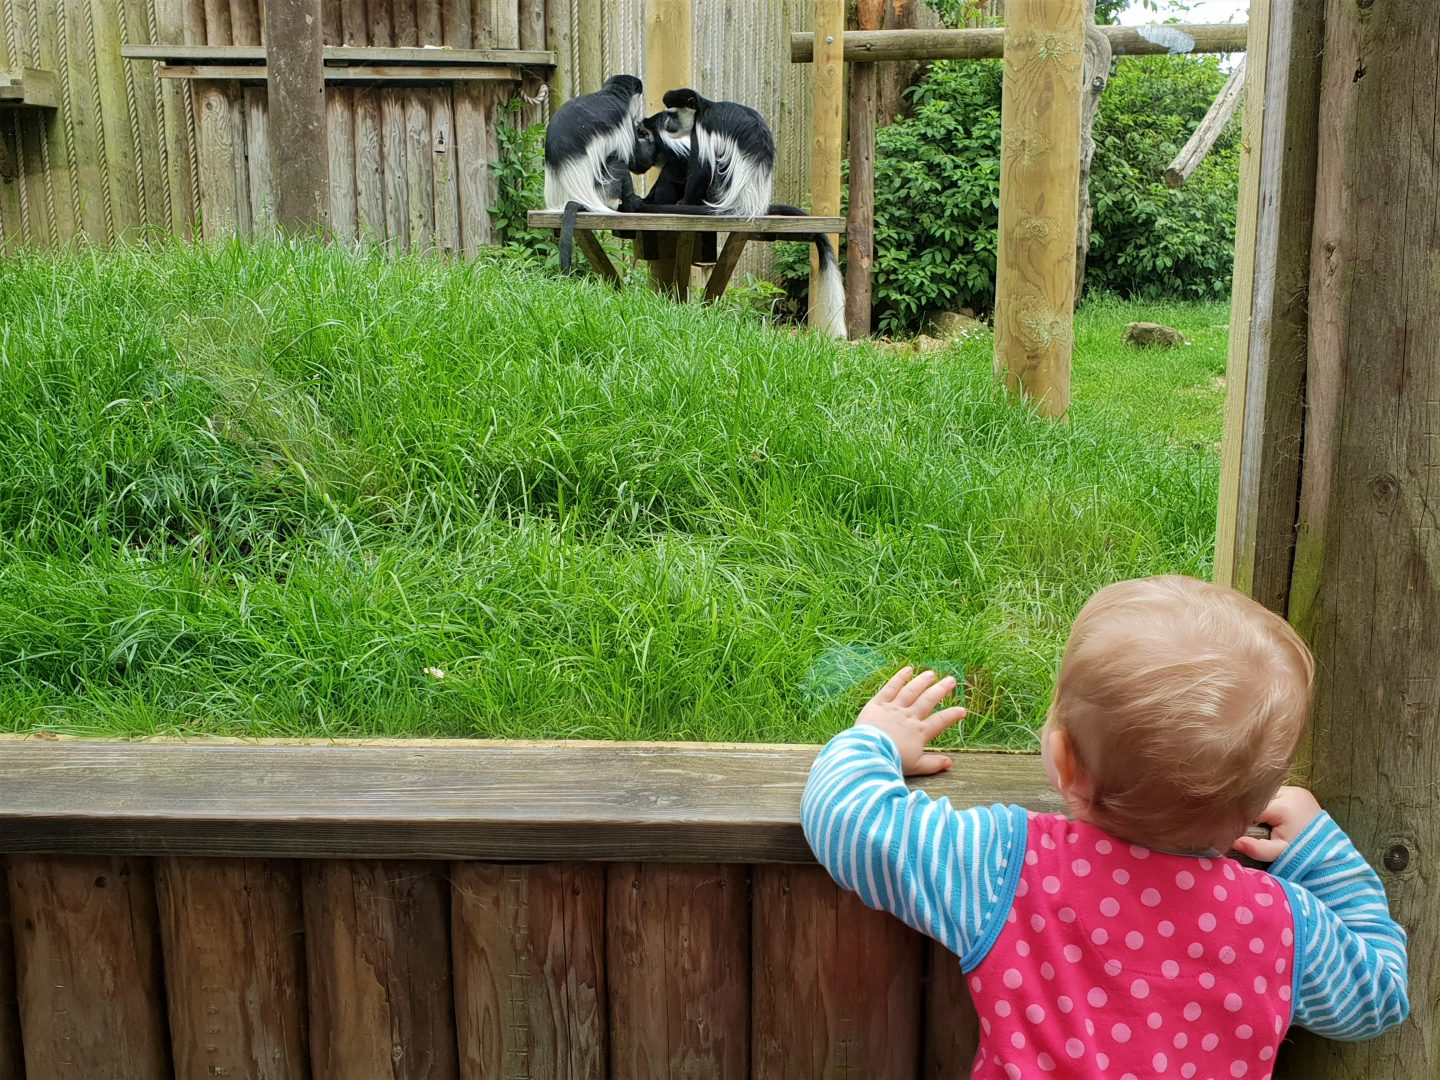 Toddler admiring Colobus monkeys at Drusillas Park